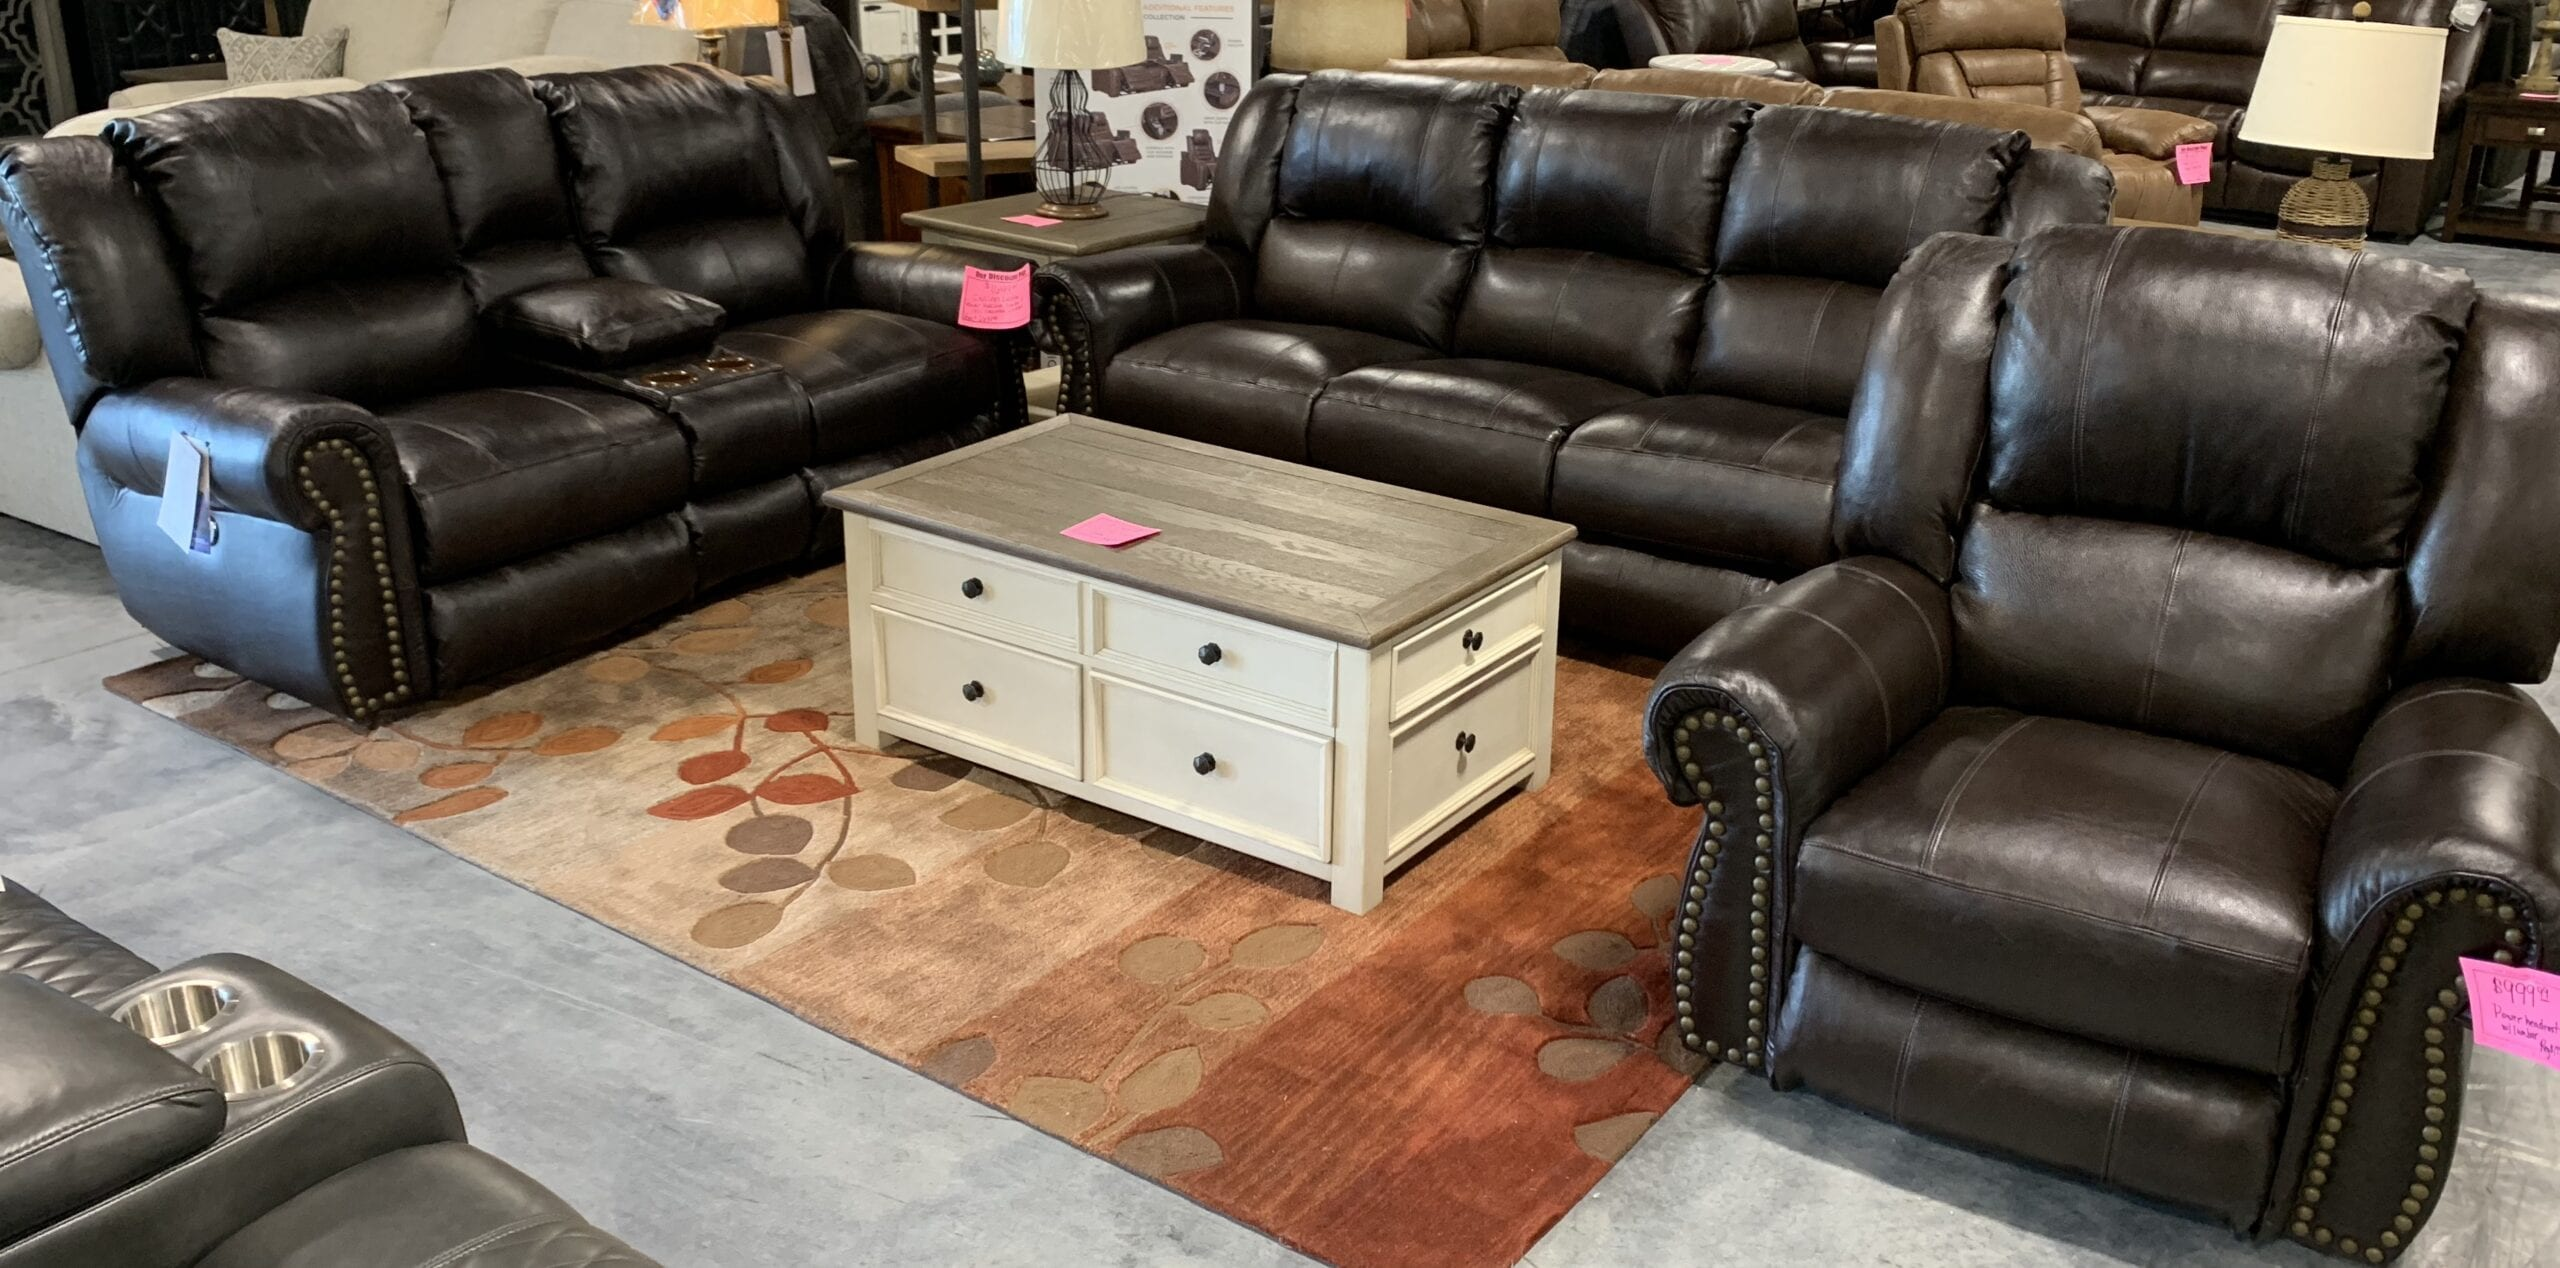 Catnapper: a leather power reclining sofa, loveseat, and matching power leather recliner.